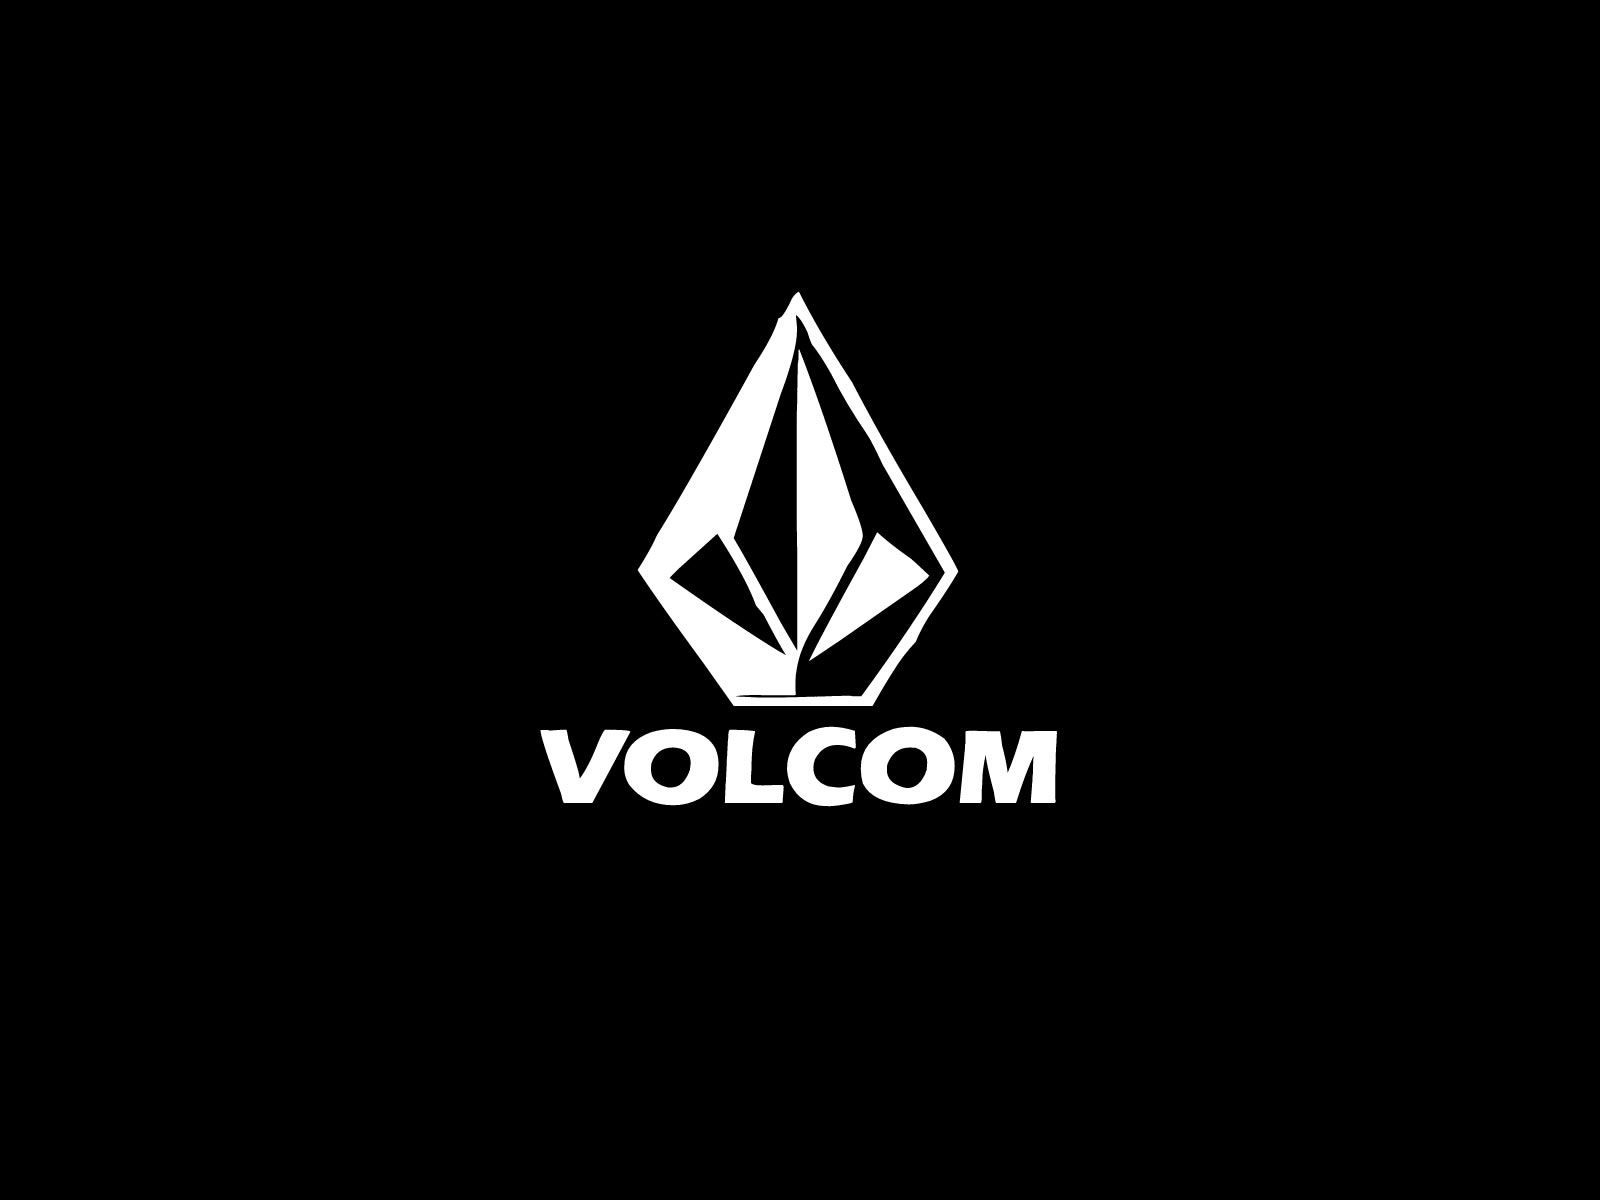 Volcom Logo Wallpaper - WallpaperSafari